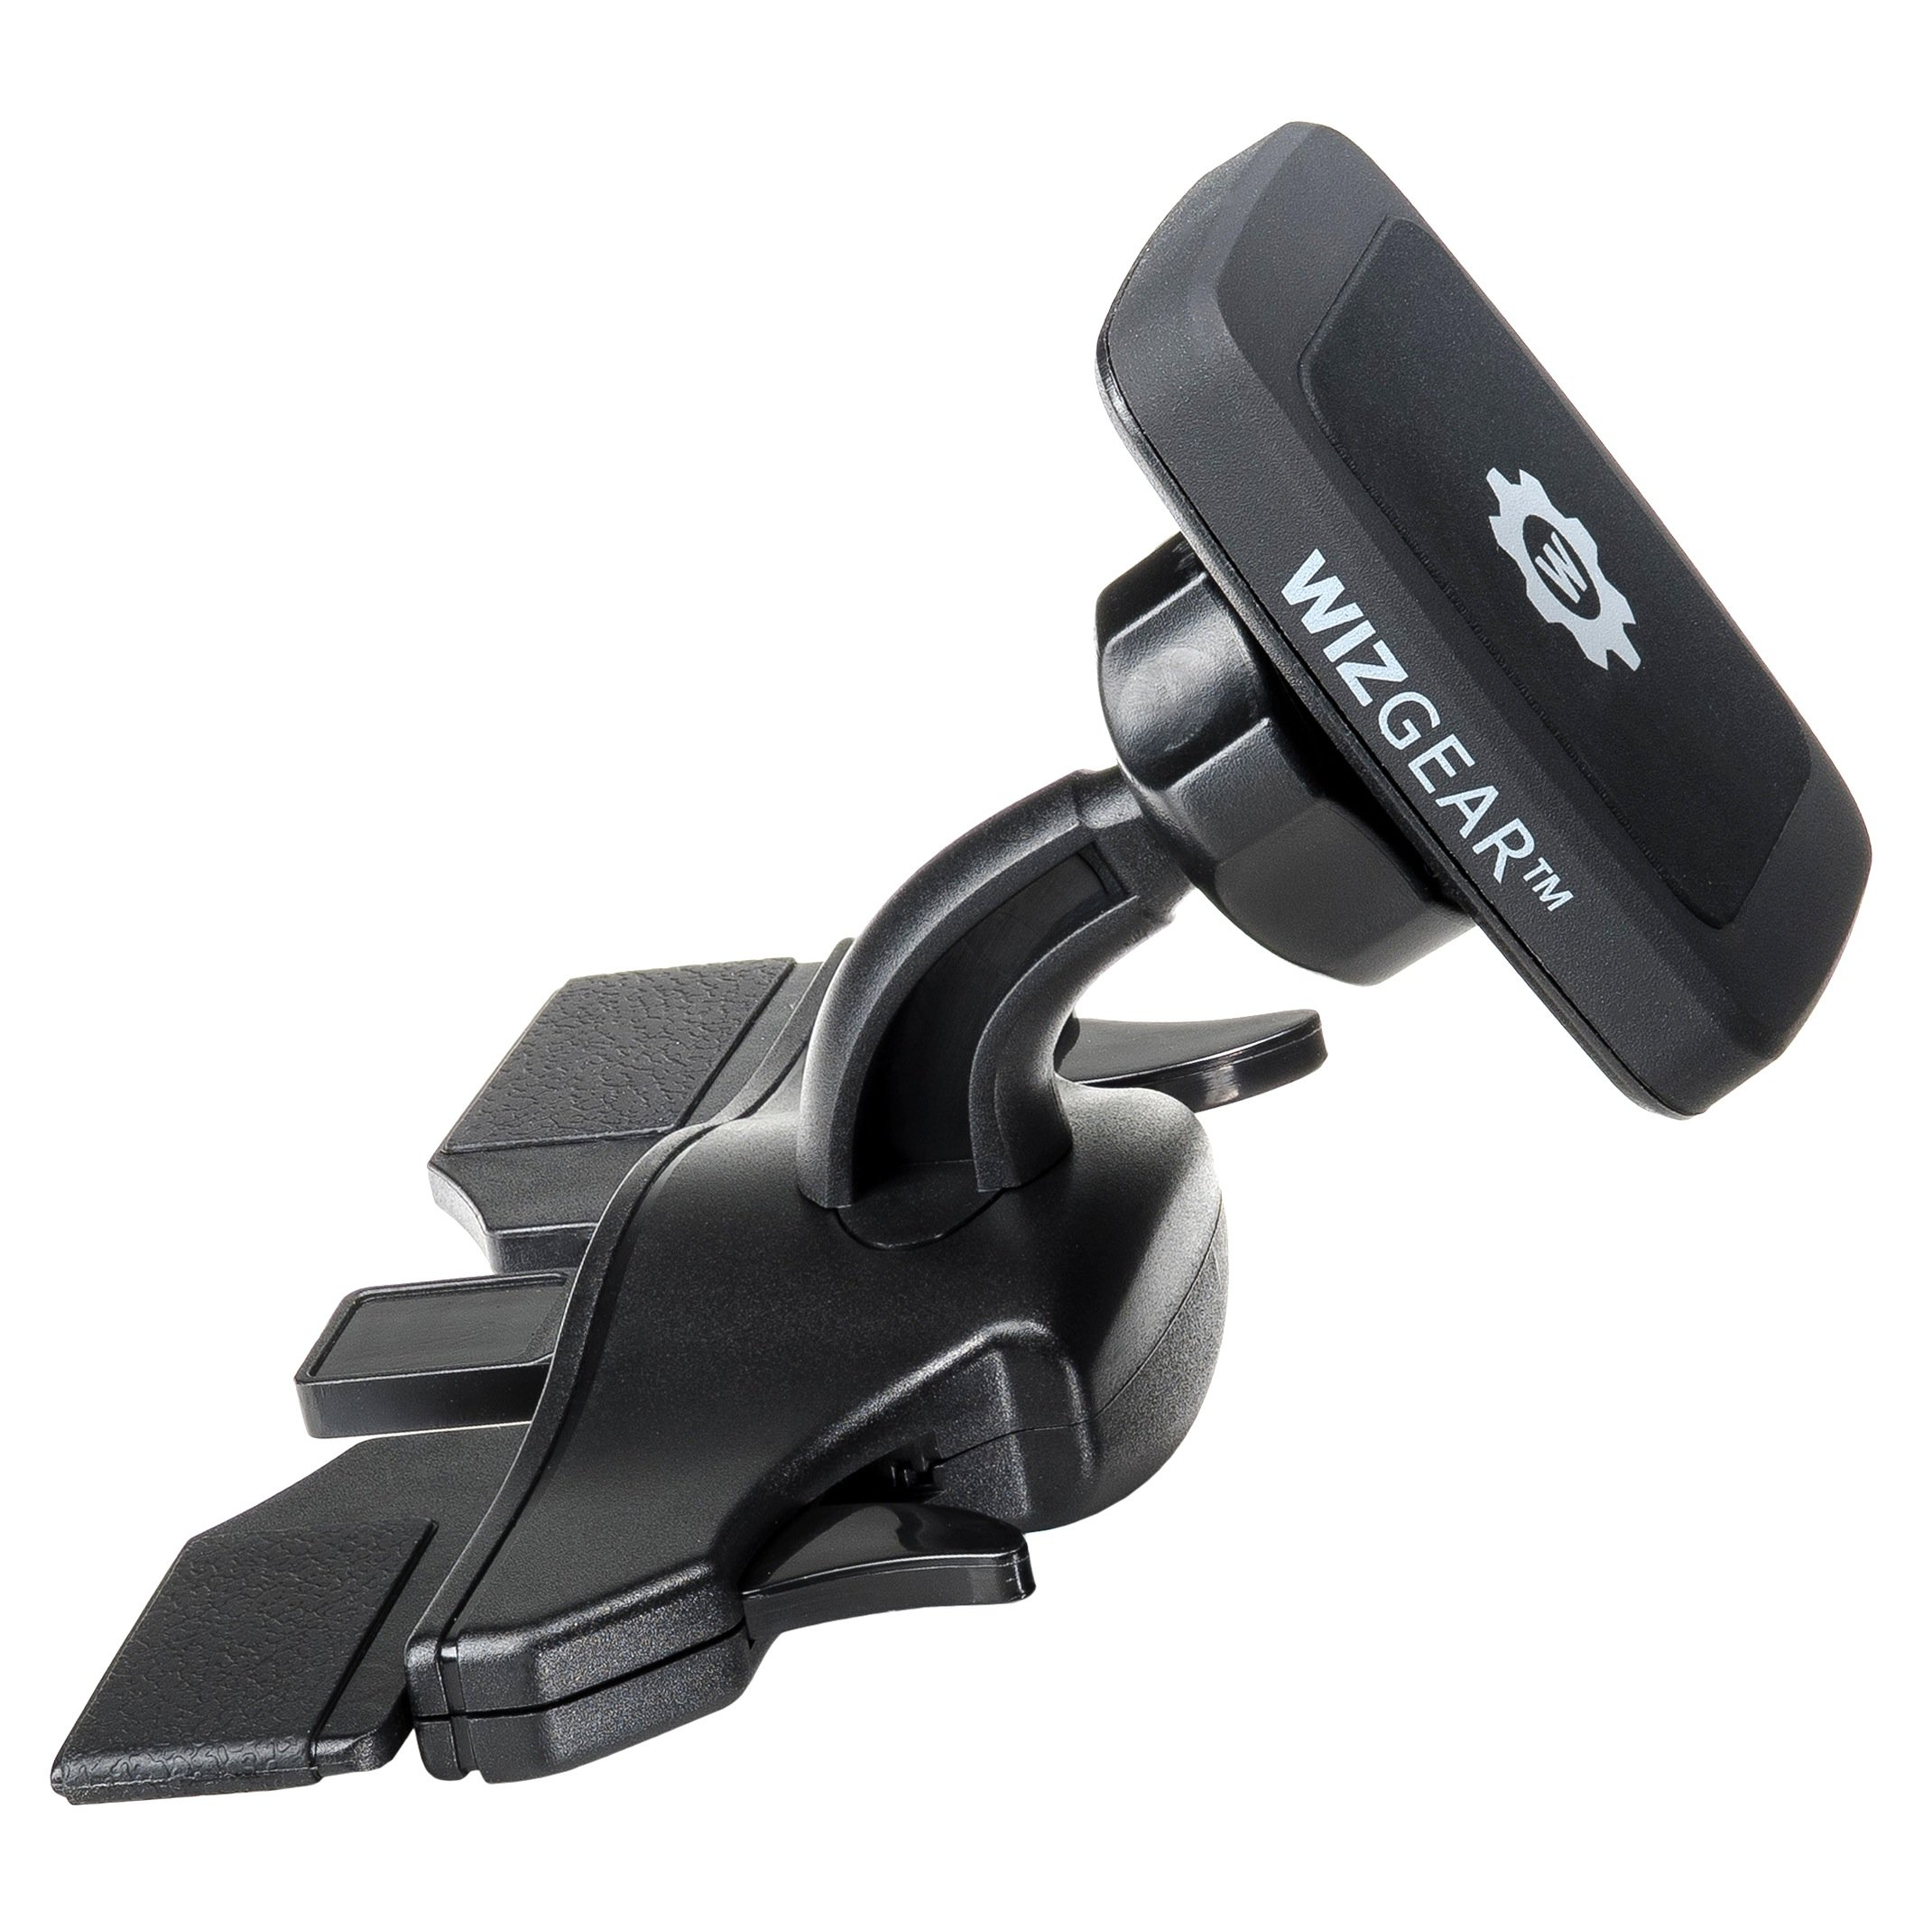 WizGear Universal CD Slot Magnetic Car Mount Holder Cell Phones Mini Tablets Fast Swift-Snap Technology, Fits Most Car Cd Slots